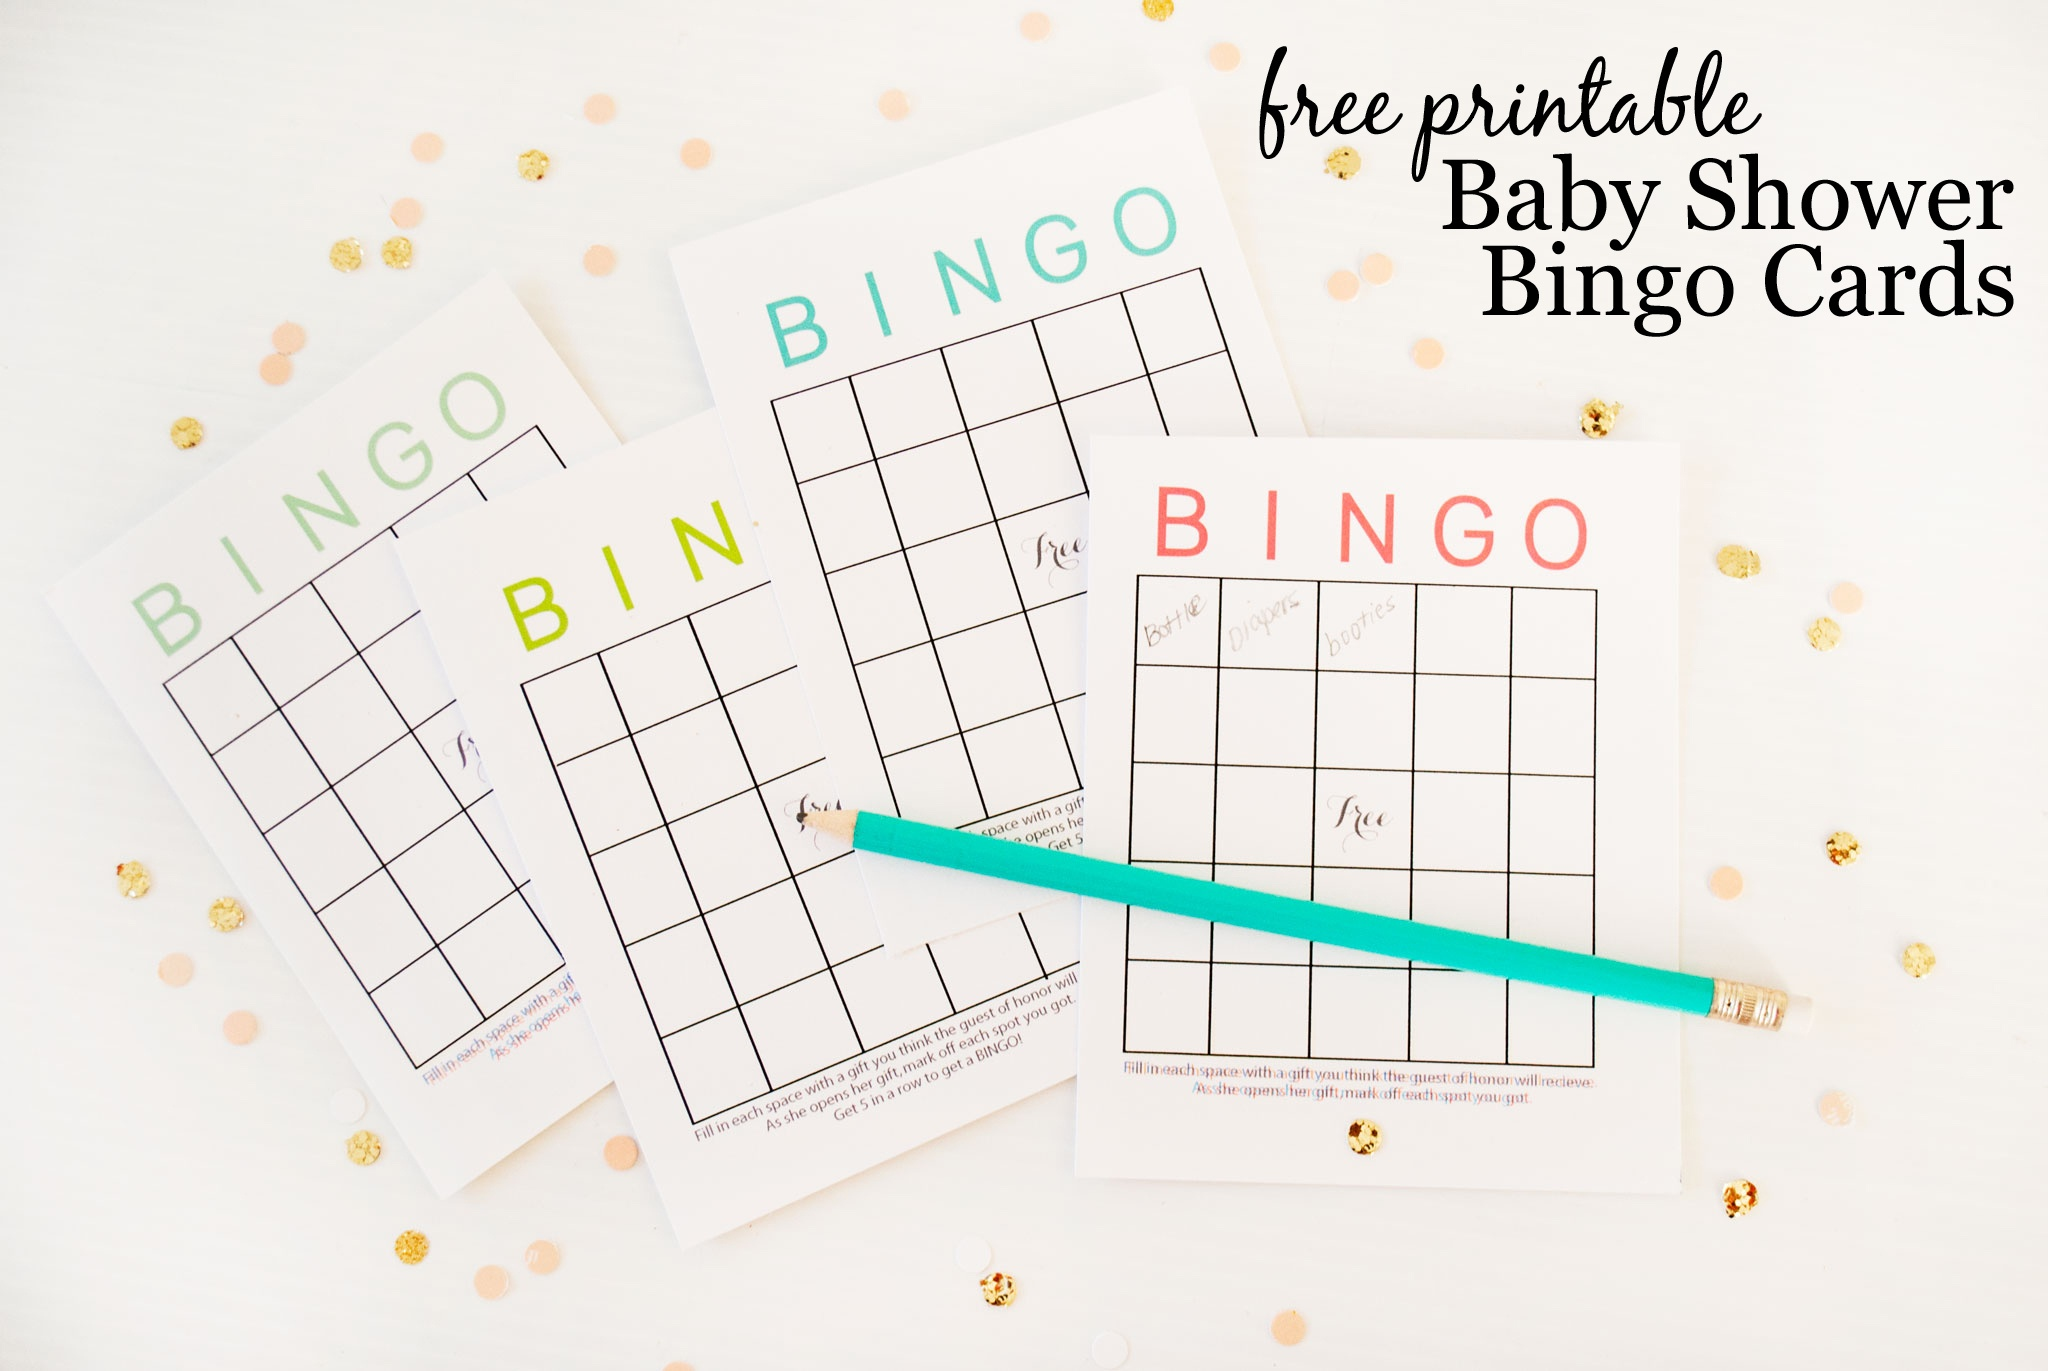 Free Printable Baby Shower Bingo Cards - Project Nursery - Free Printable Baby Shower Bingo Cards